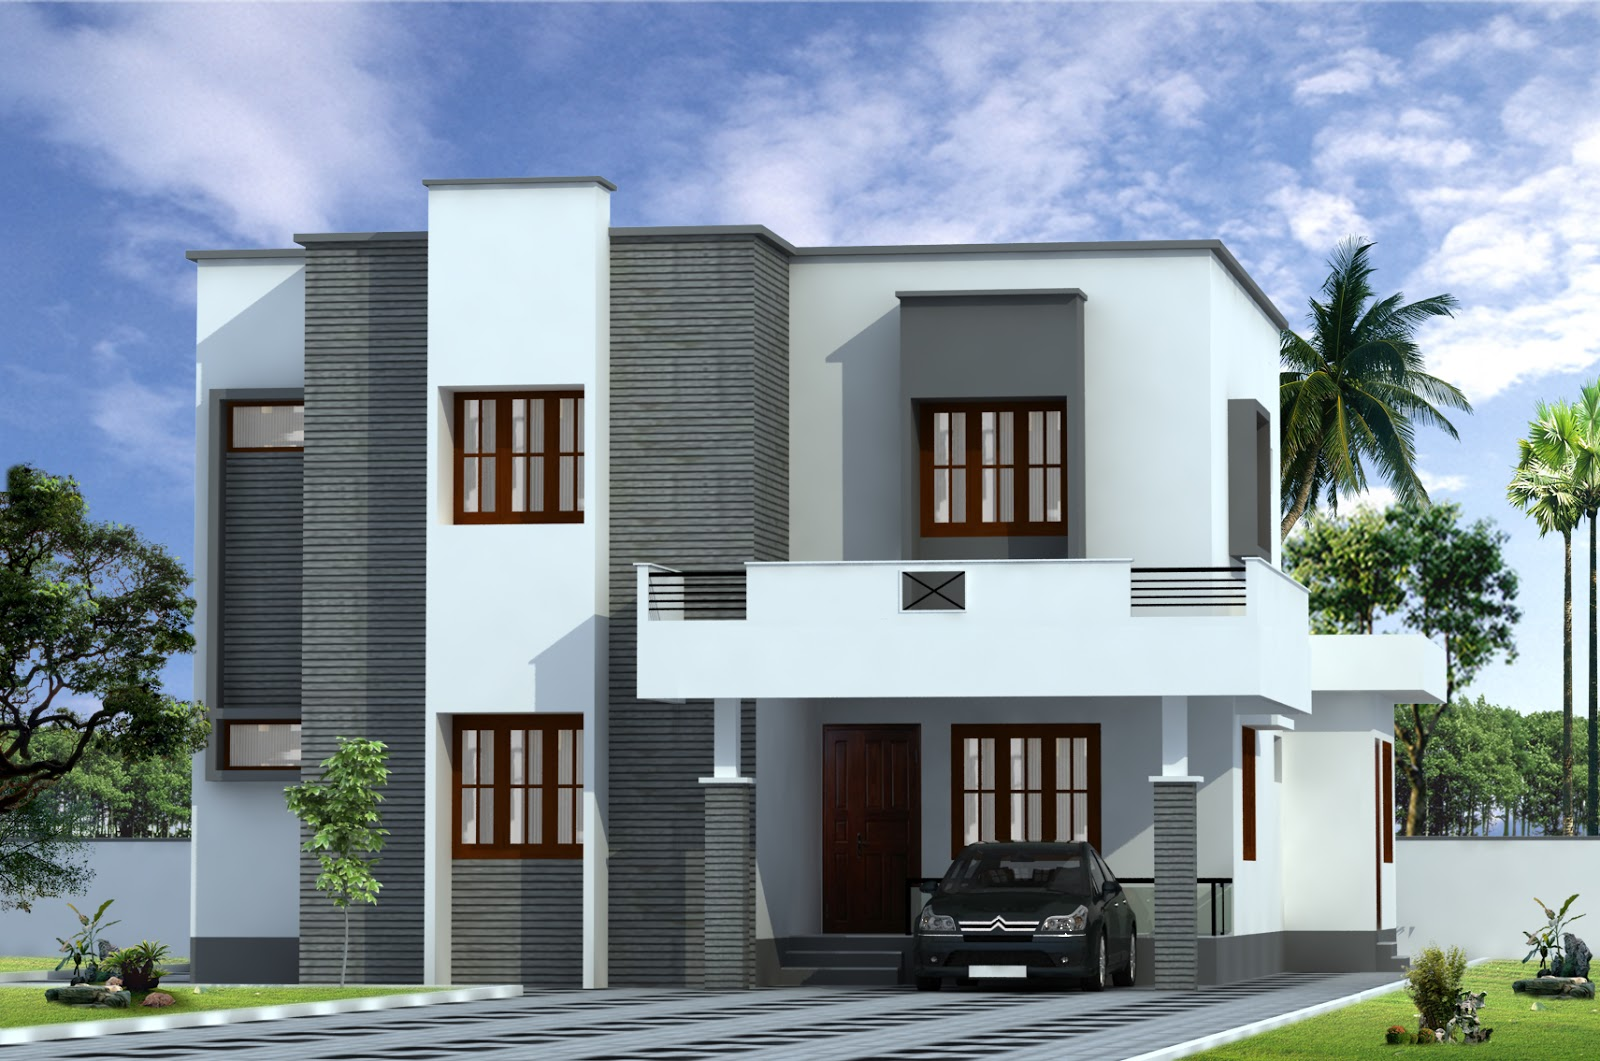 Build a building house designs - Design of home ...